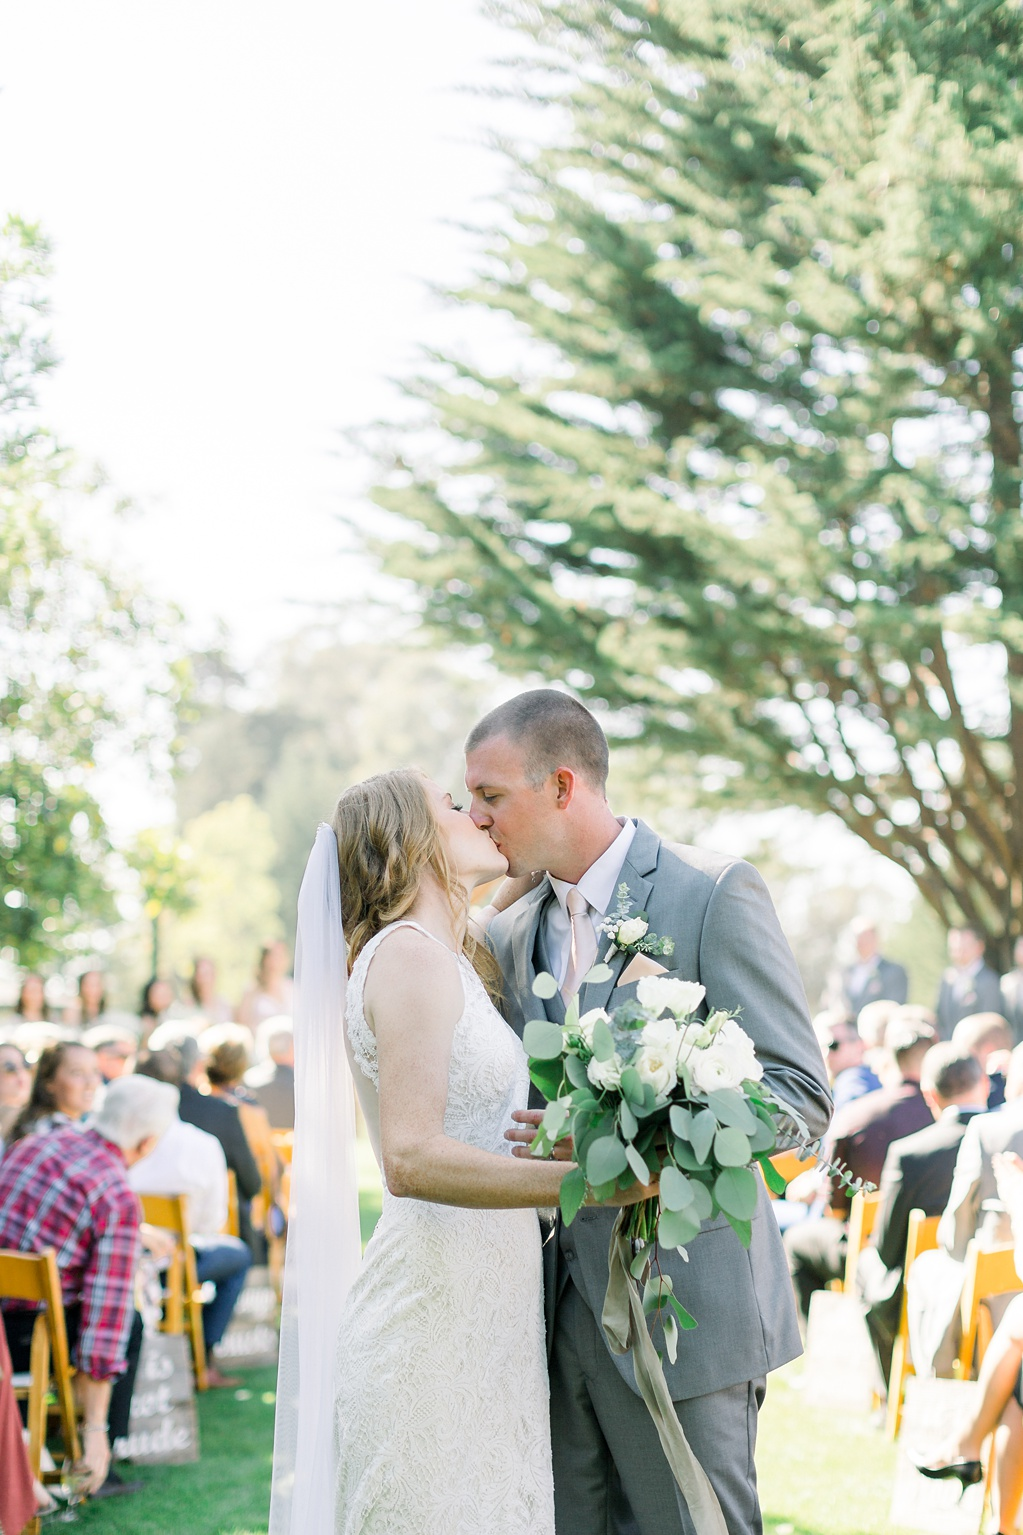 White Barn Inspired Summer Wedding In The Valley of Arroyo Grande, California by Wedding Photographer Madison Ellis. (52)